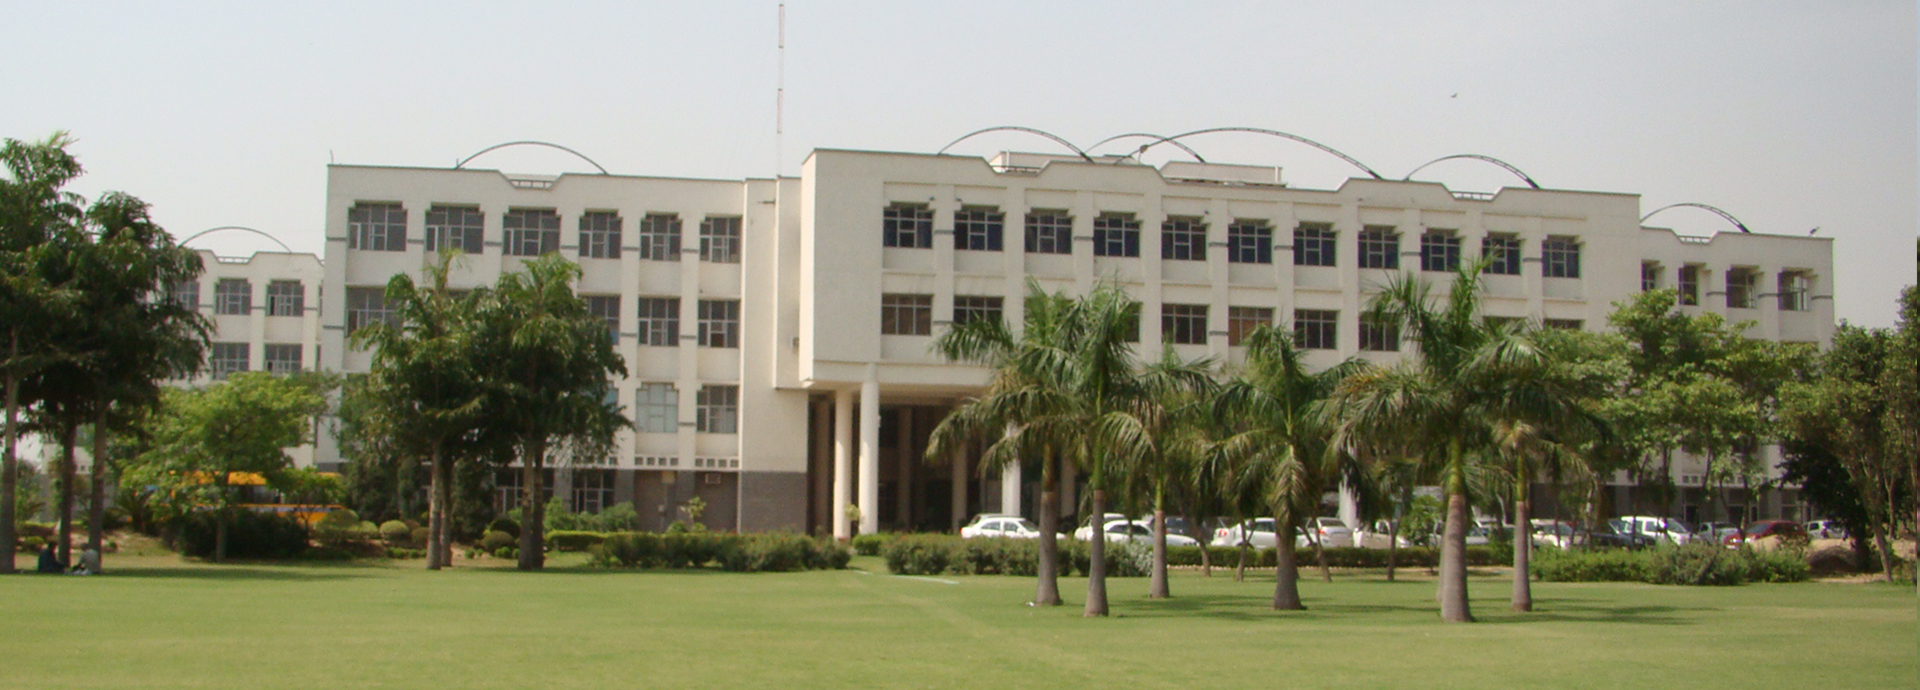 Sudha Rustagi College of Dental Sciences and Research, Faridabad Image